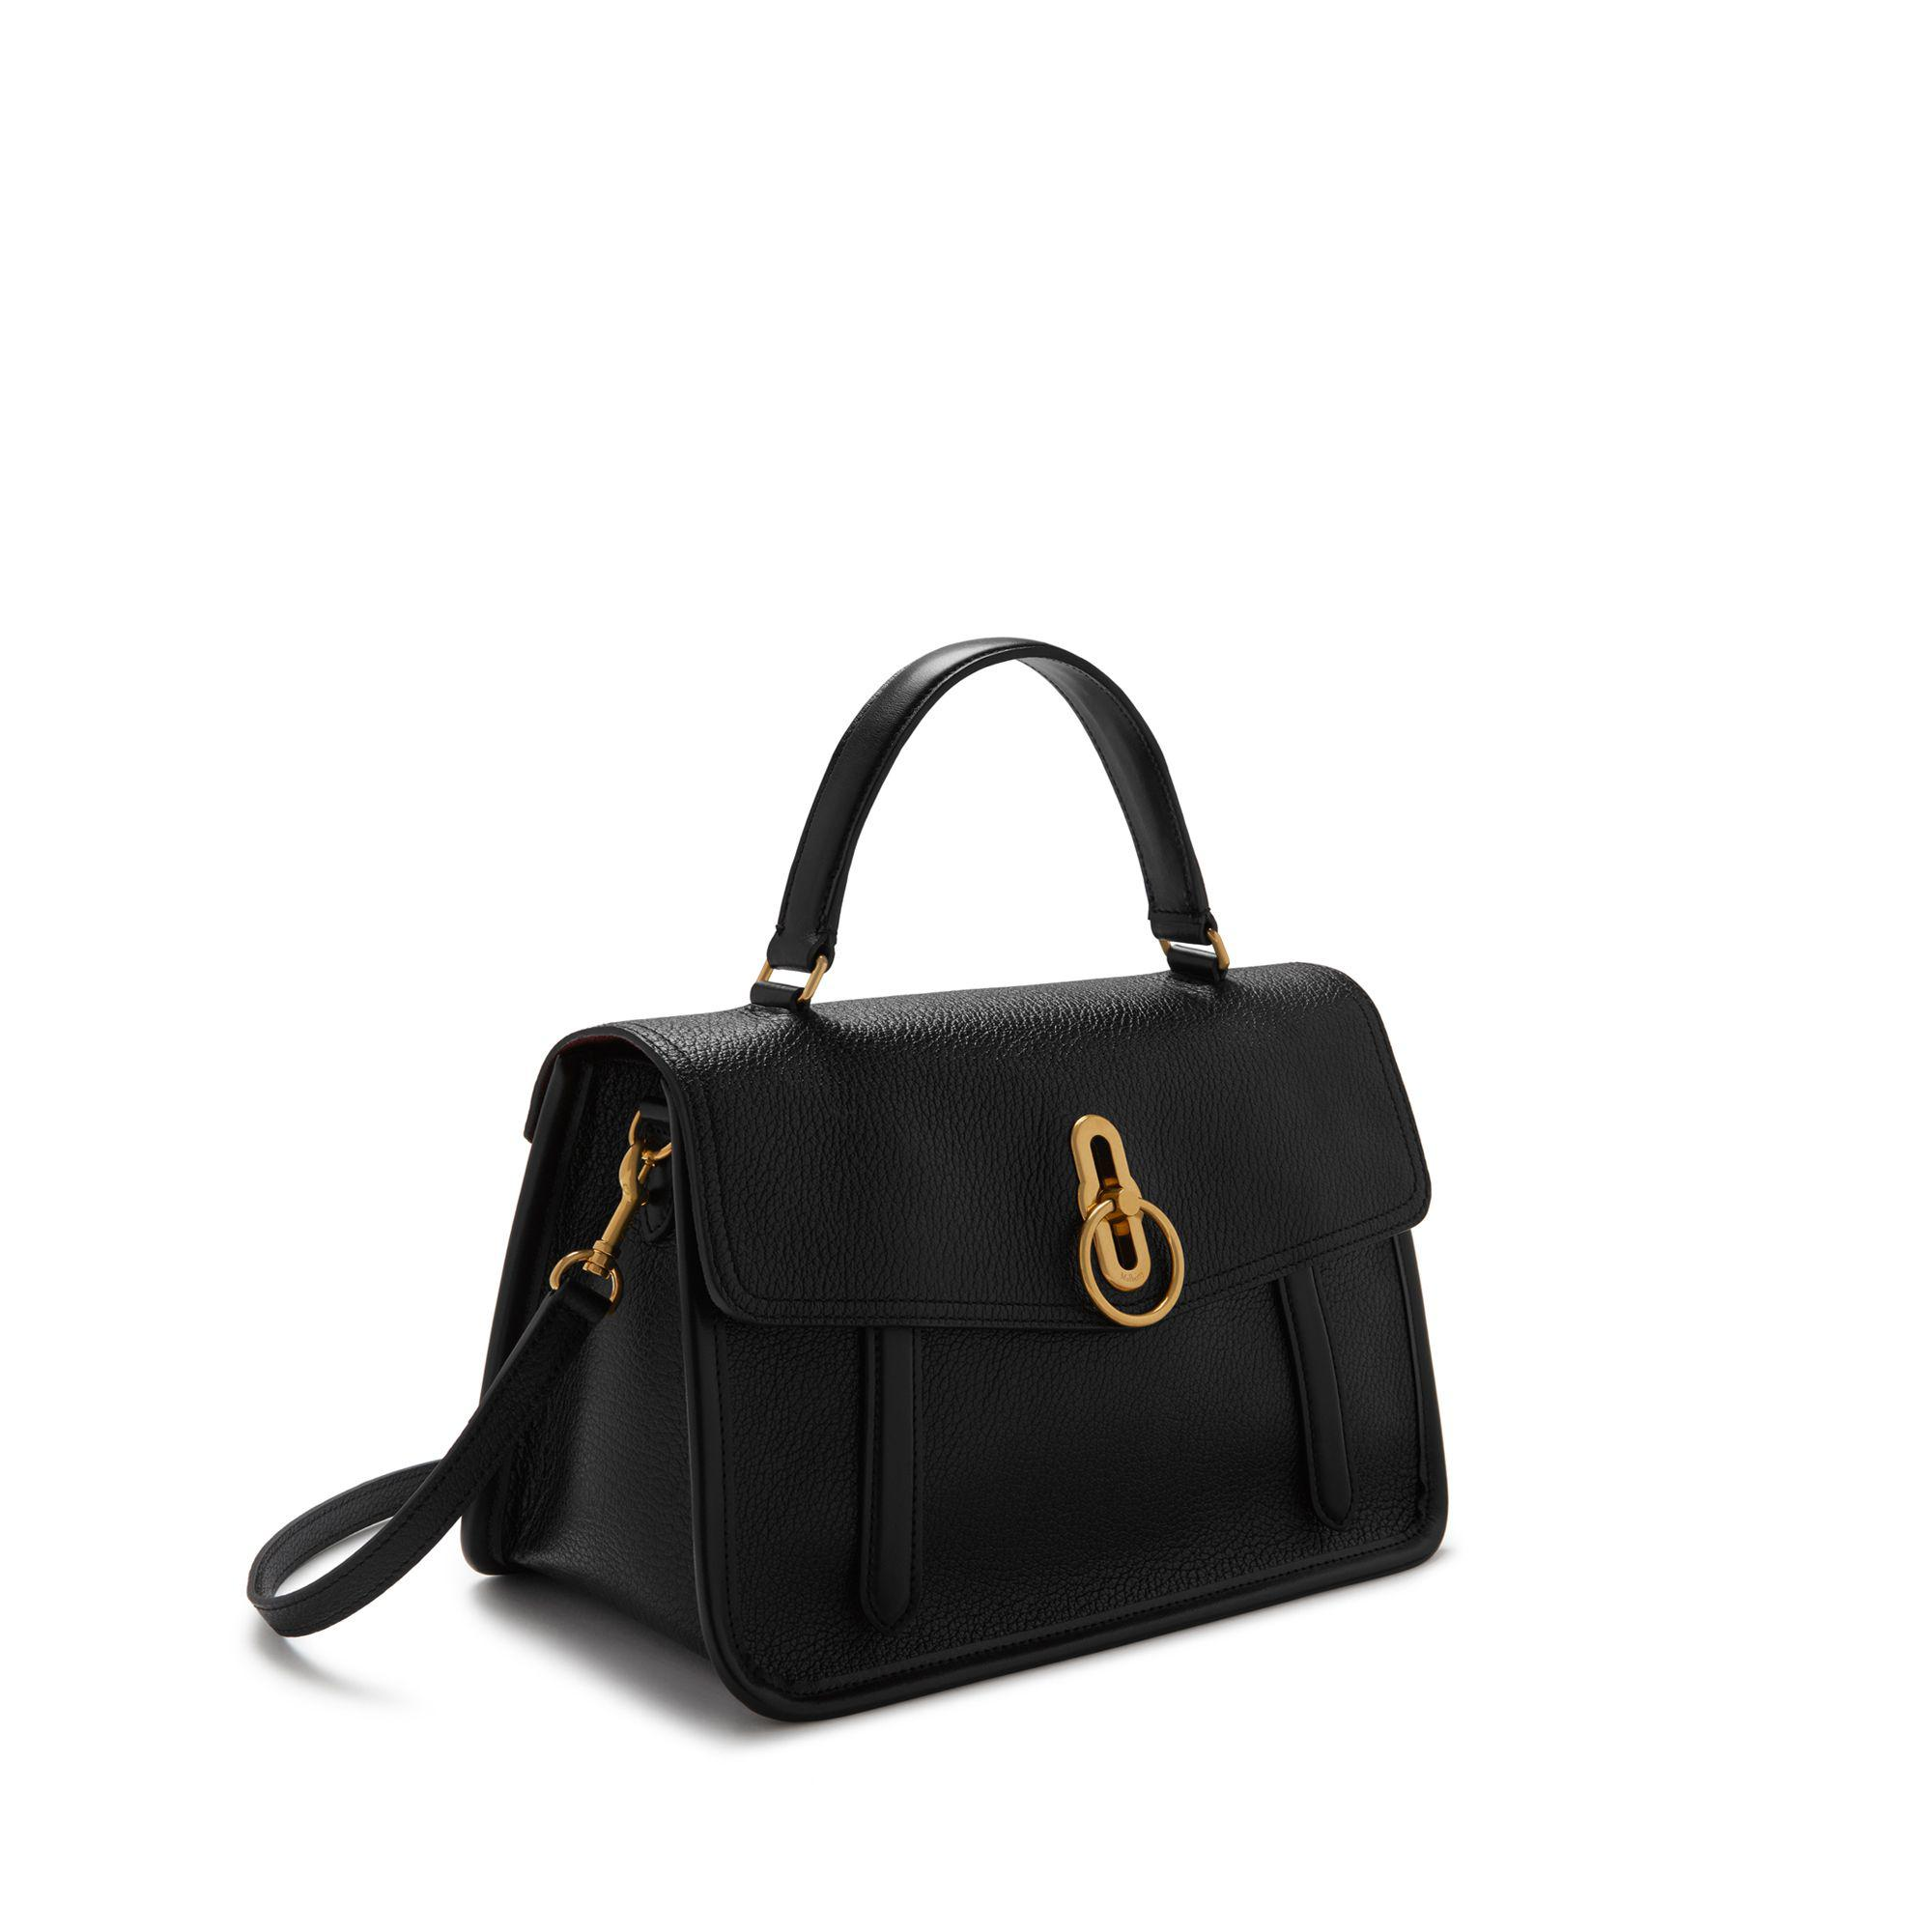 Lyst - Mulberry Gracy Satchel In Black Textured Goat And Smooth Calf ... 666c64a031